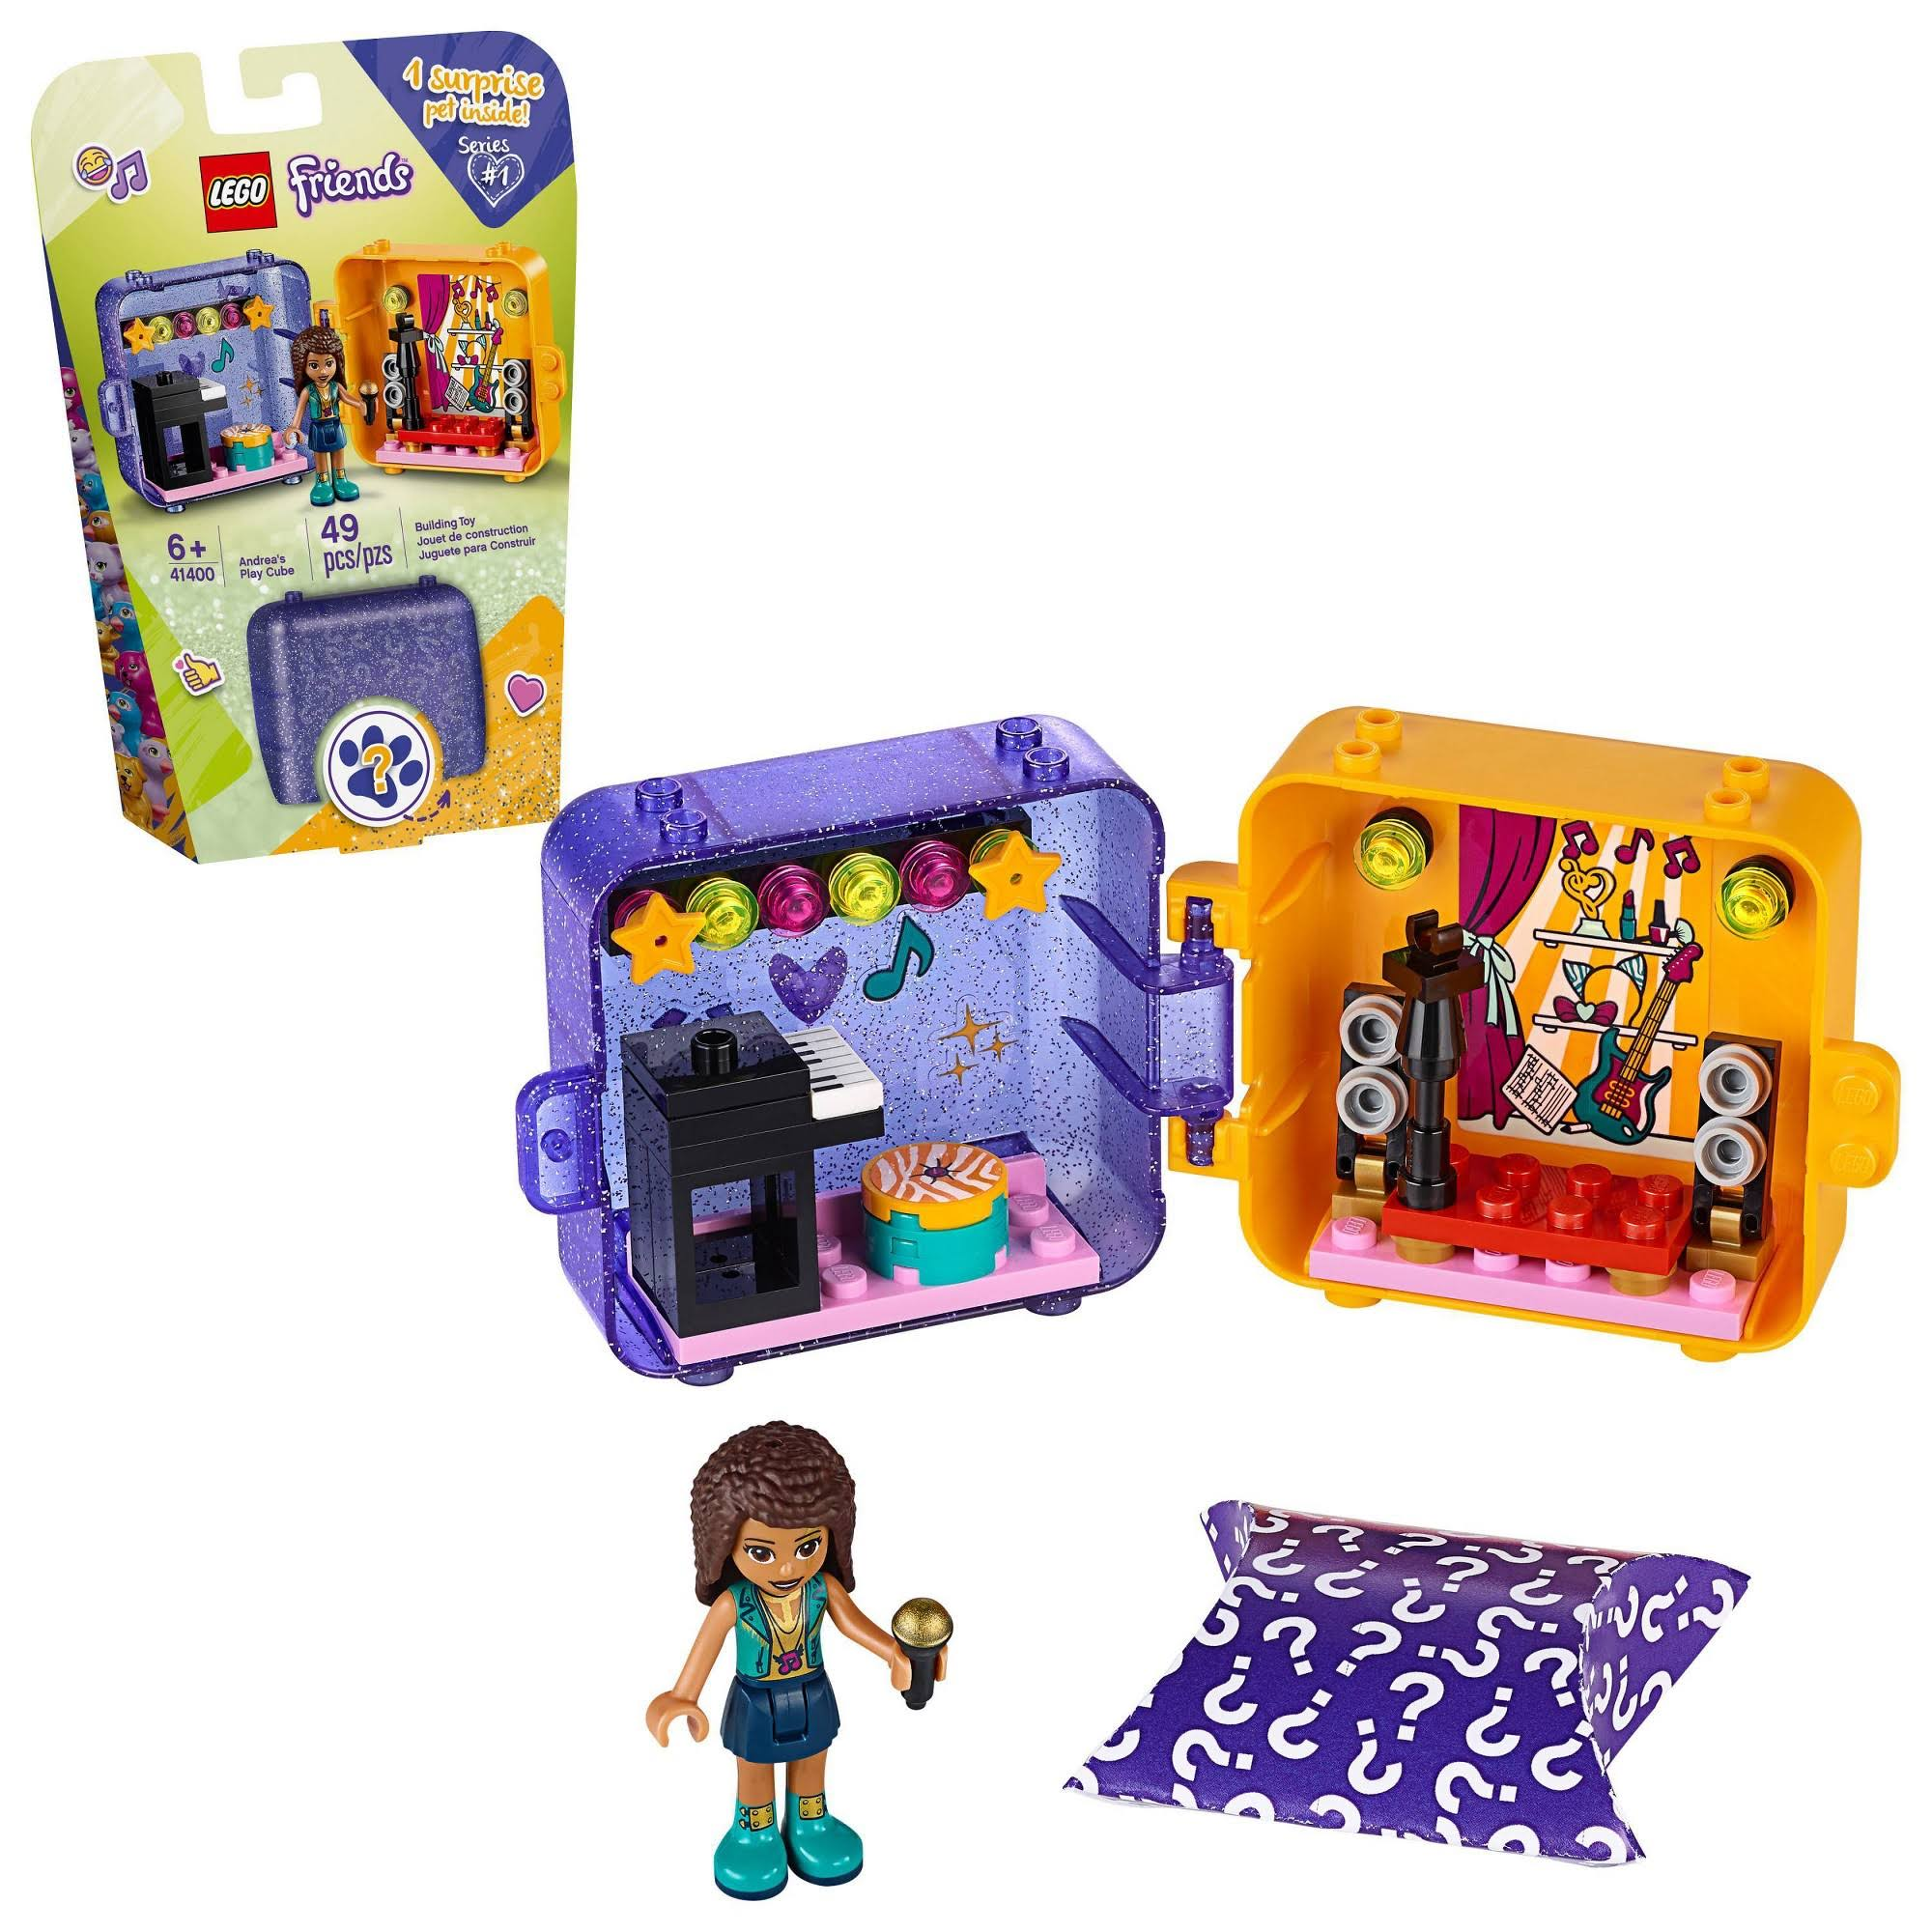 Lego Friends Andrea's Play Cube 41400 Building Kit